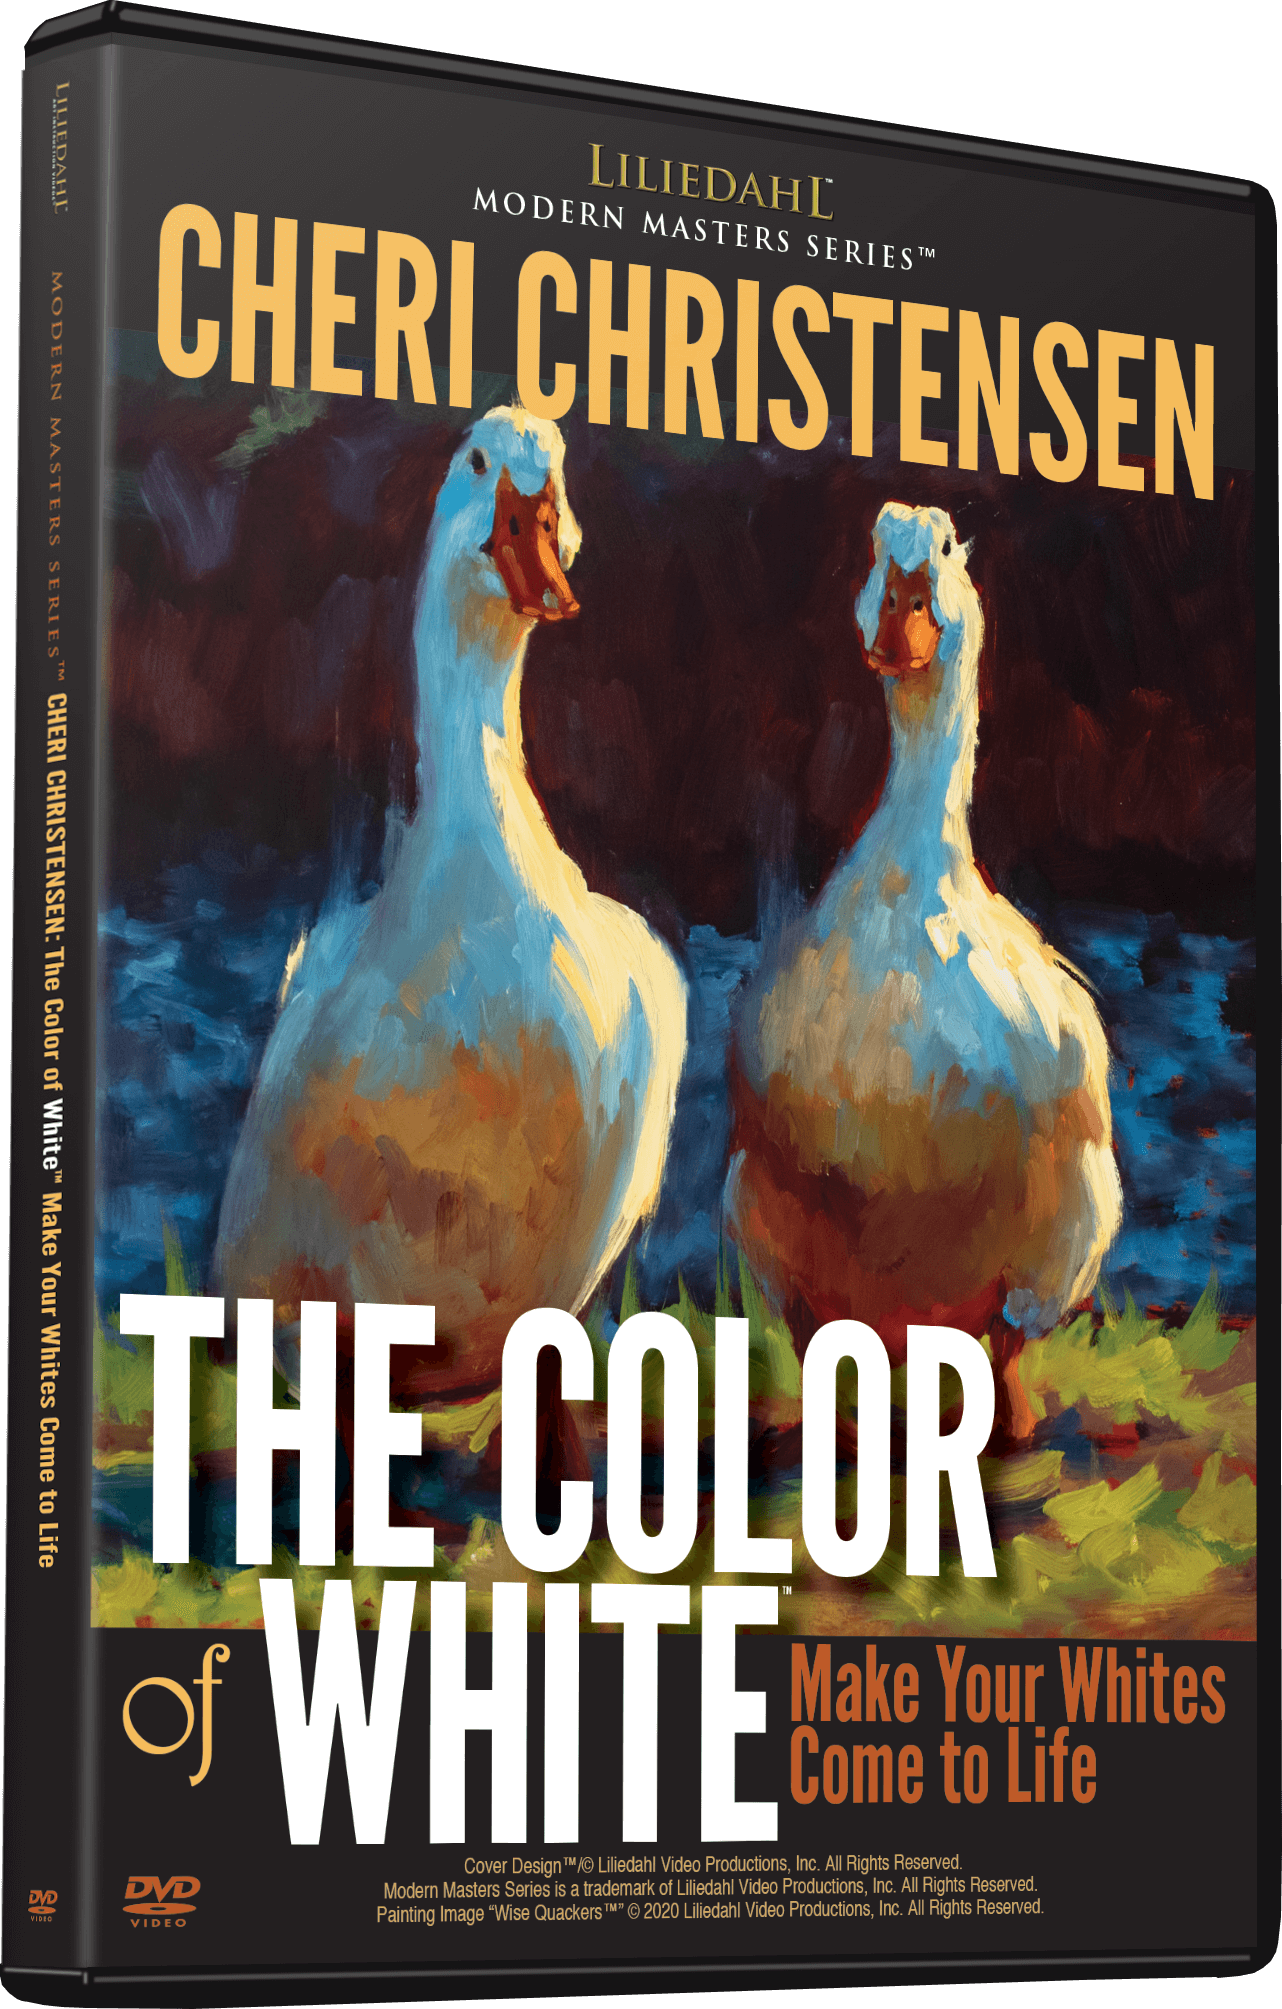 Cheri Christensen: The Color of White - Make Your Whites Come to Life